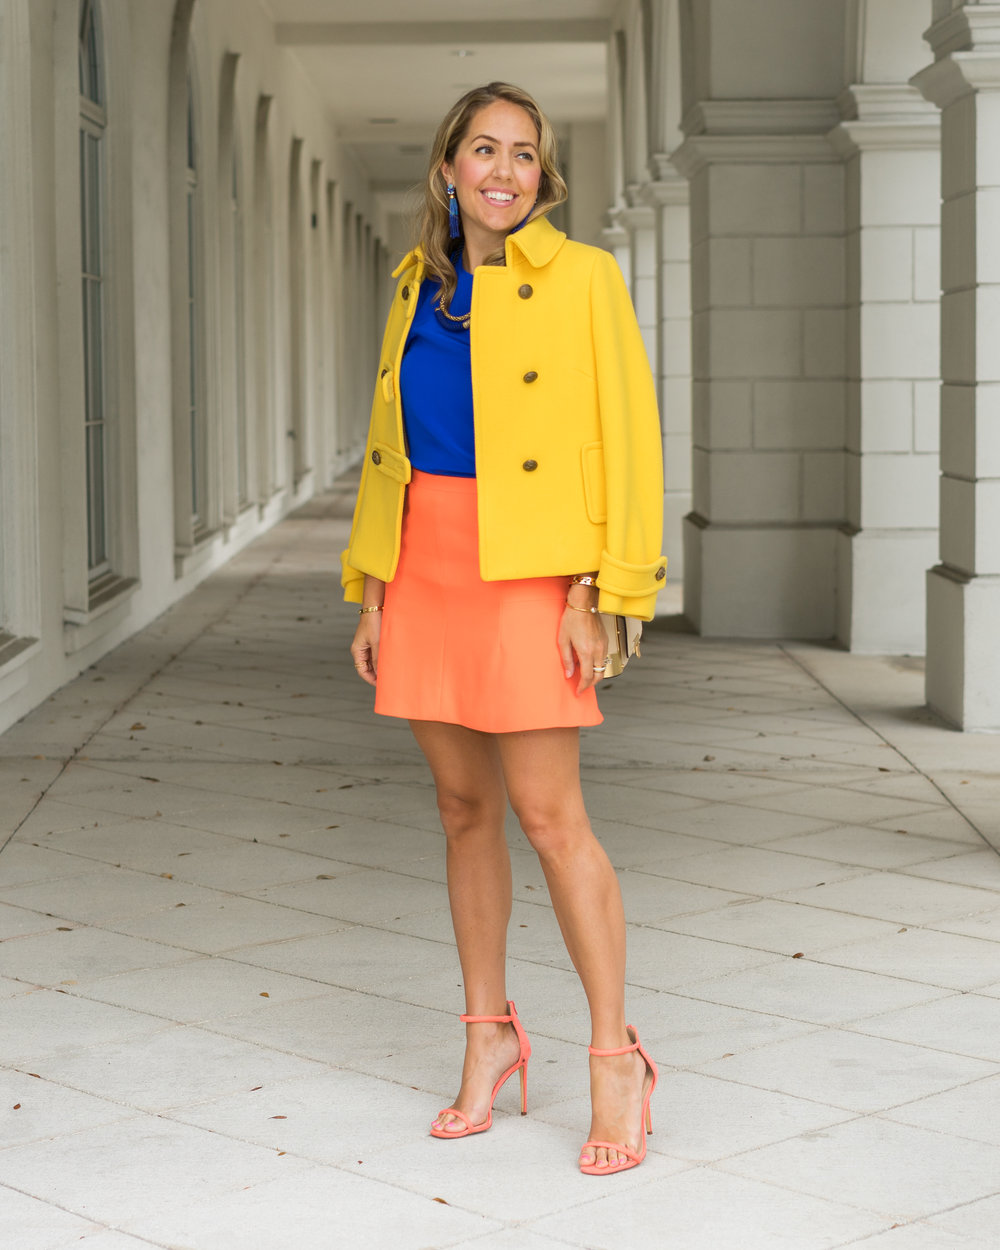 Yellow coat, cobalt top, orange skirt